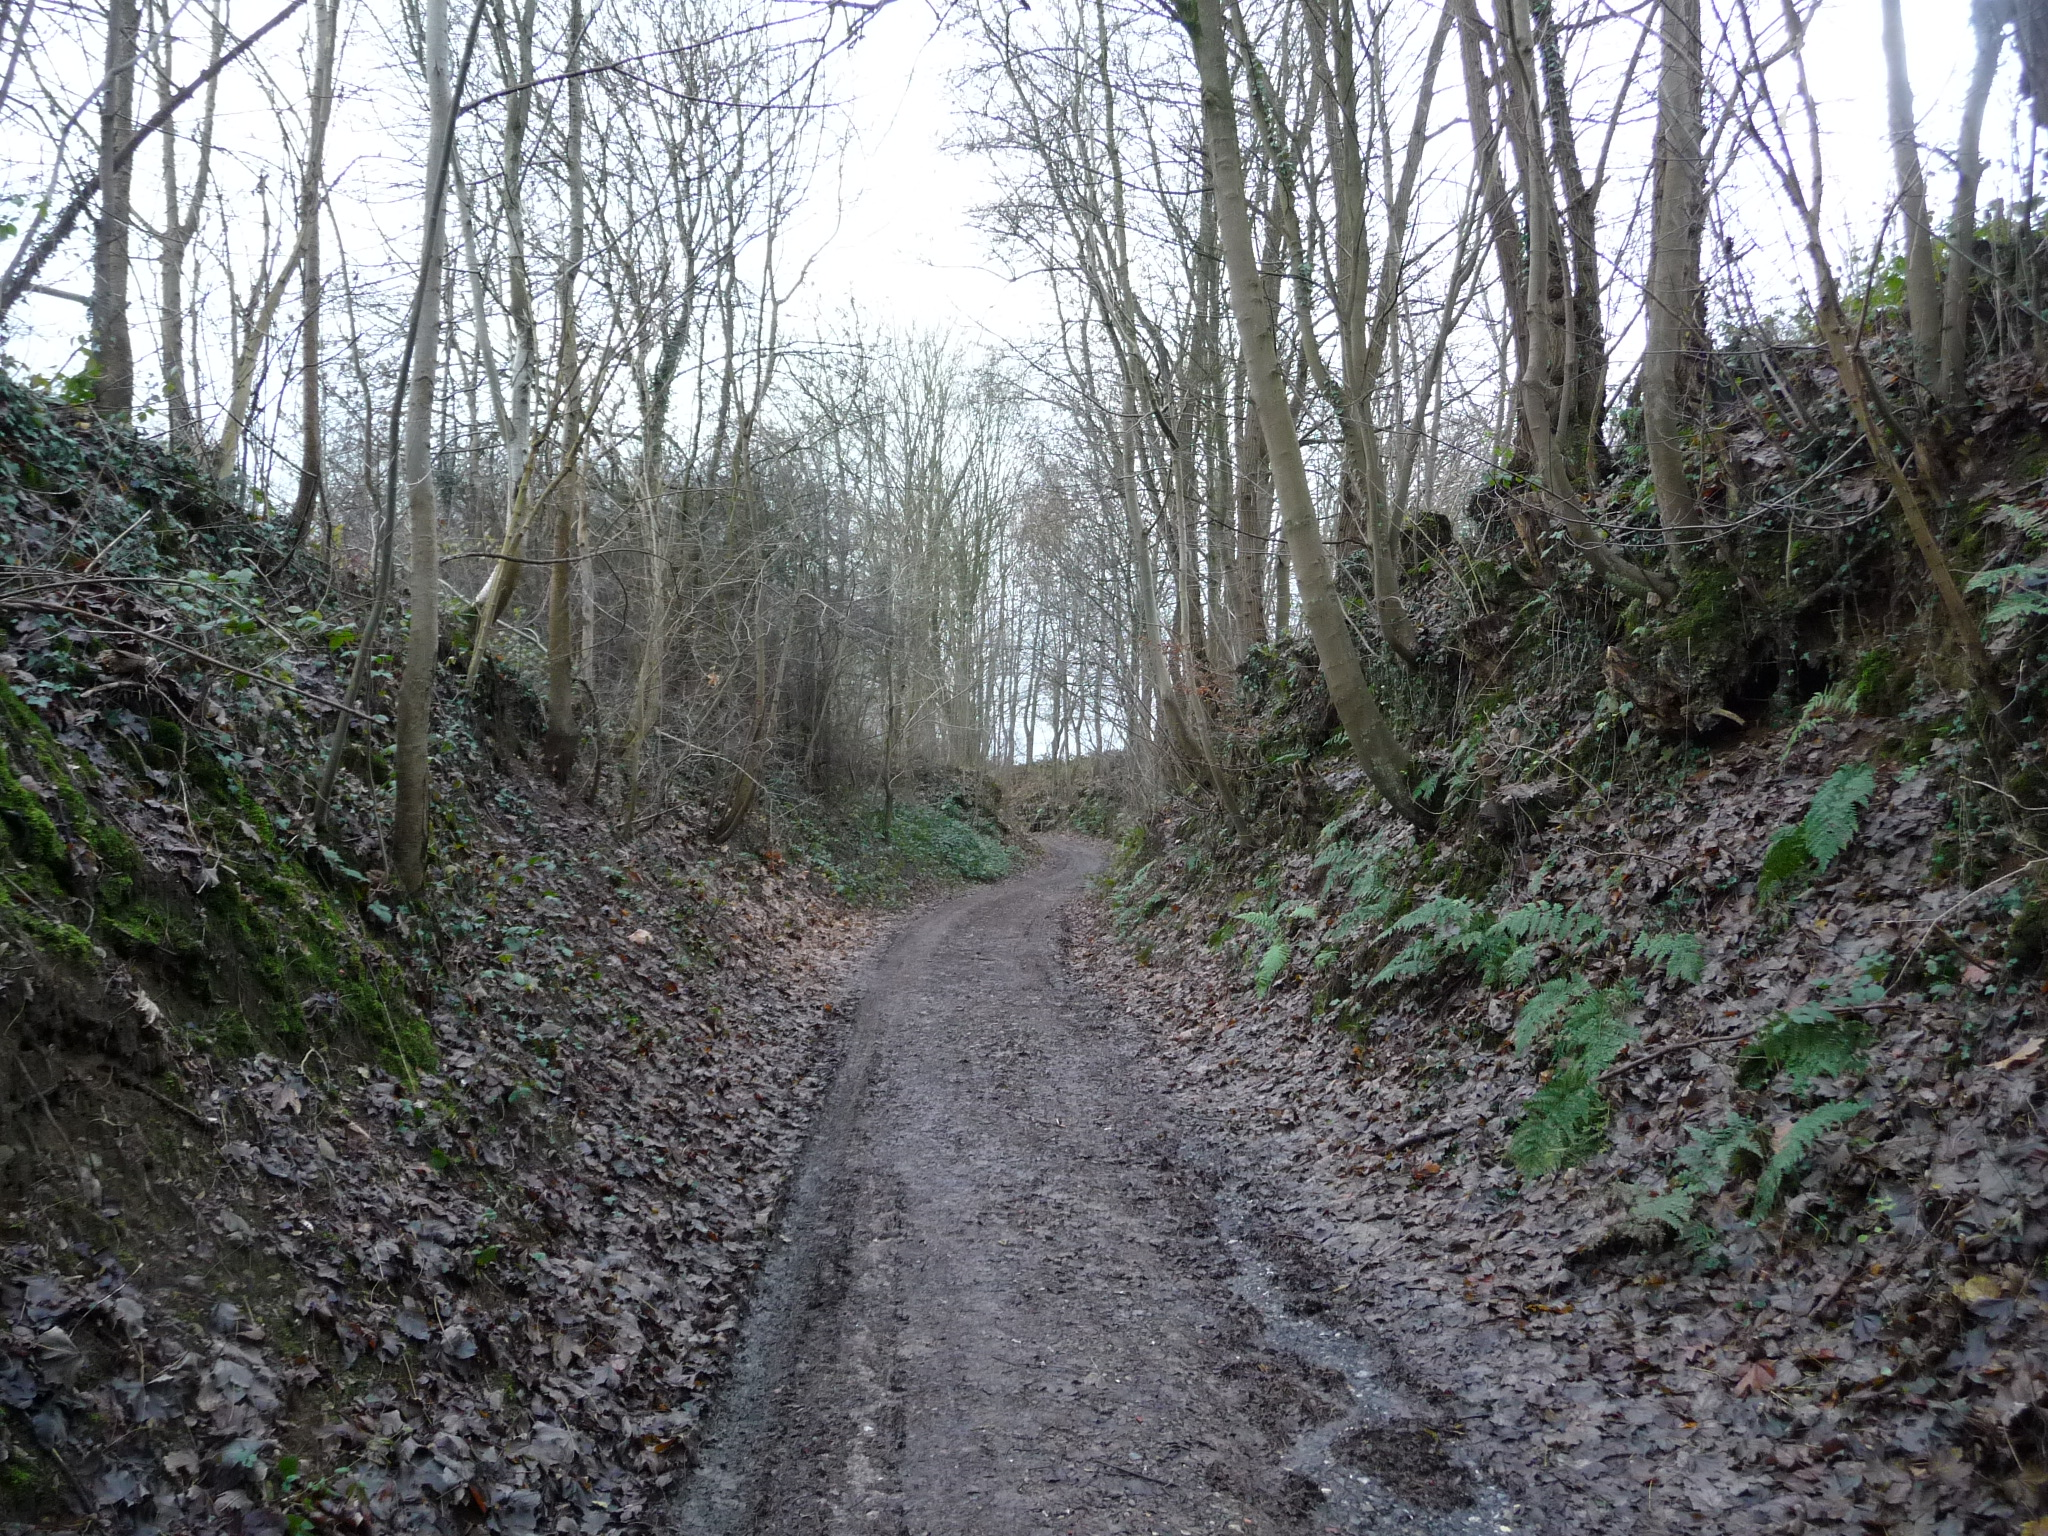 The sunken lanes